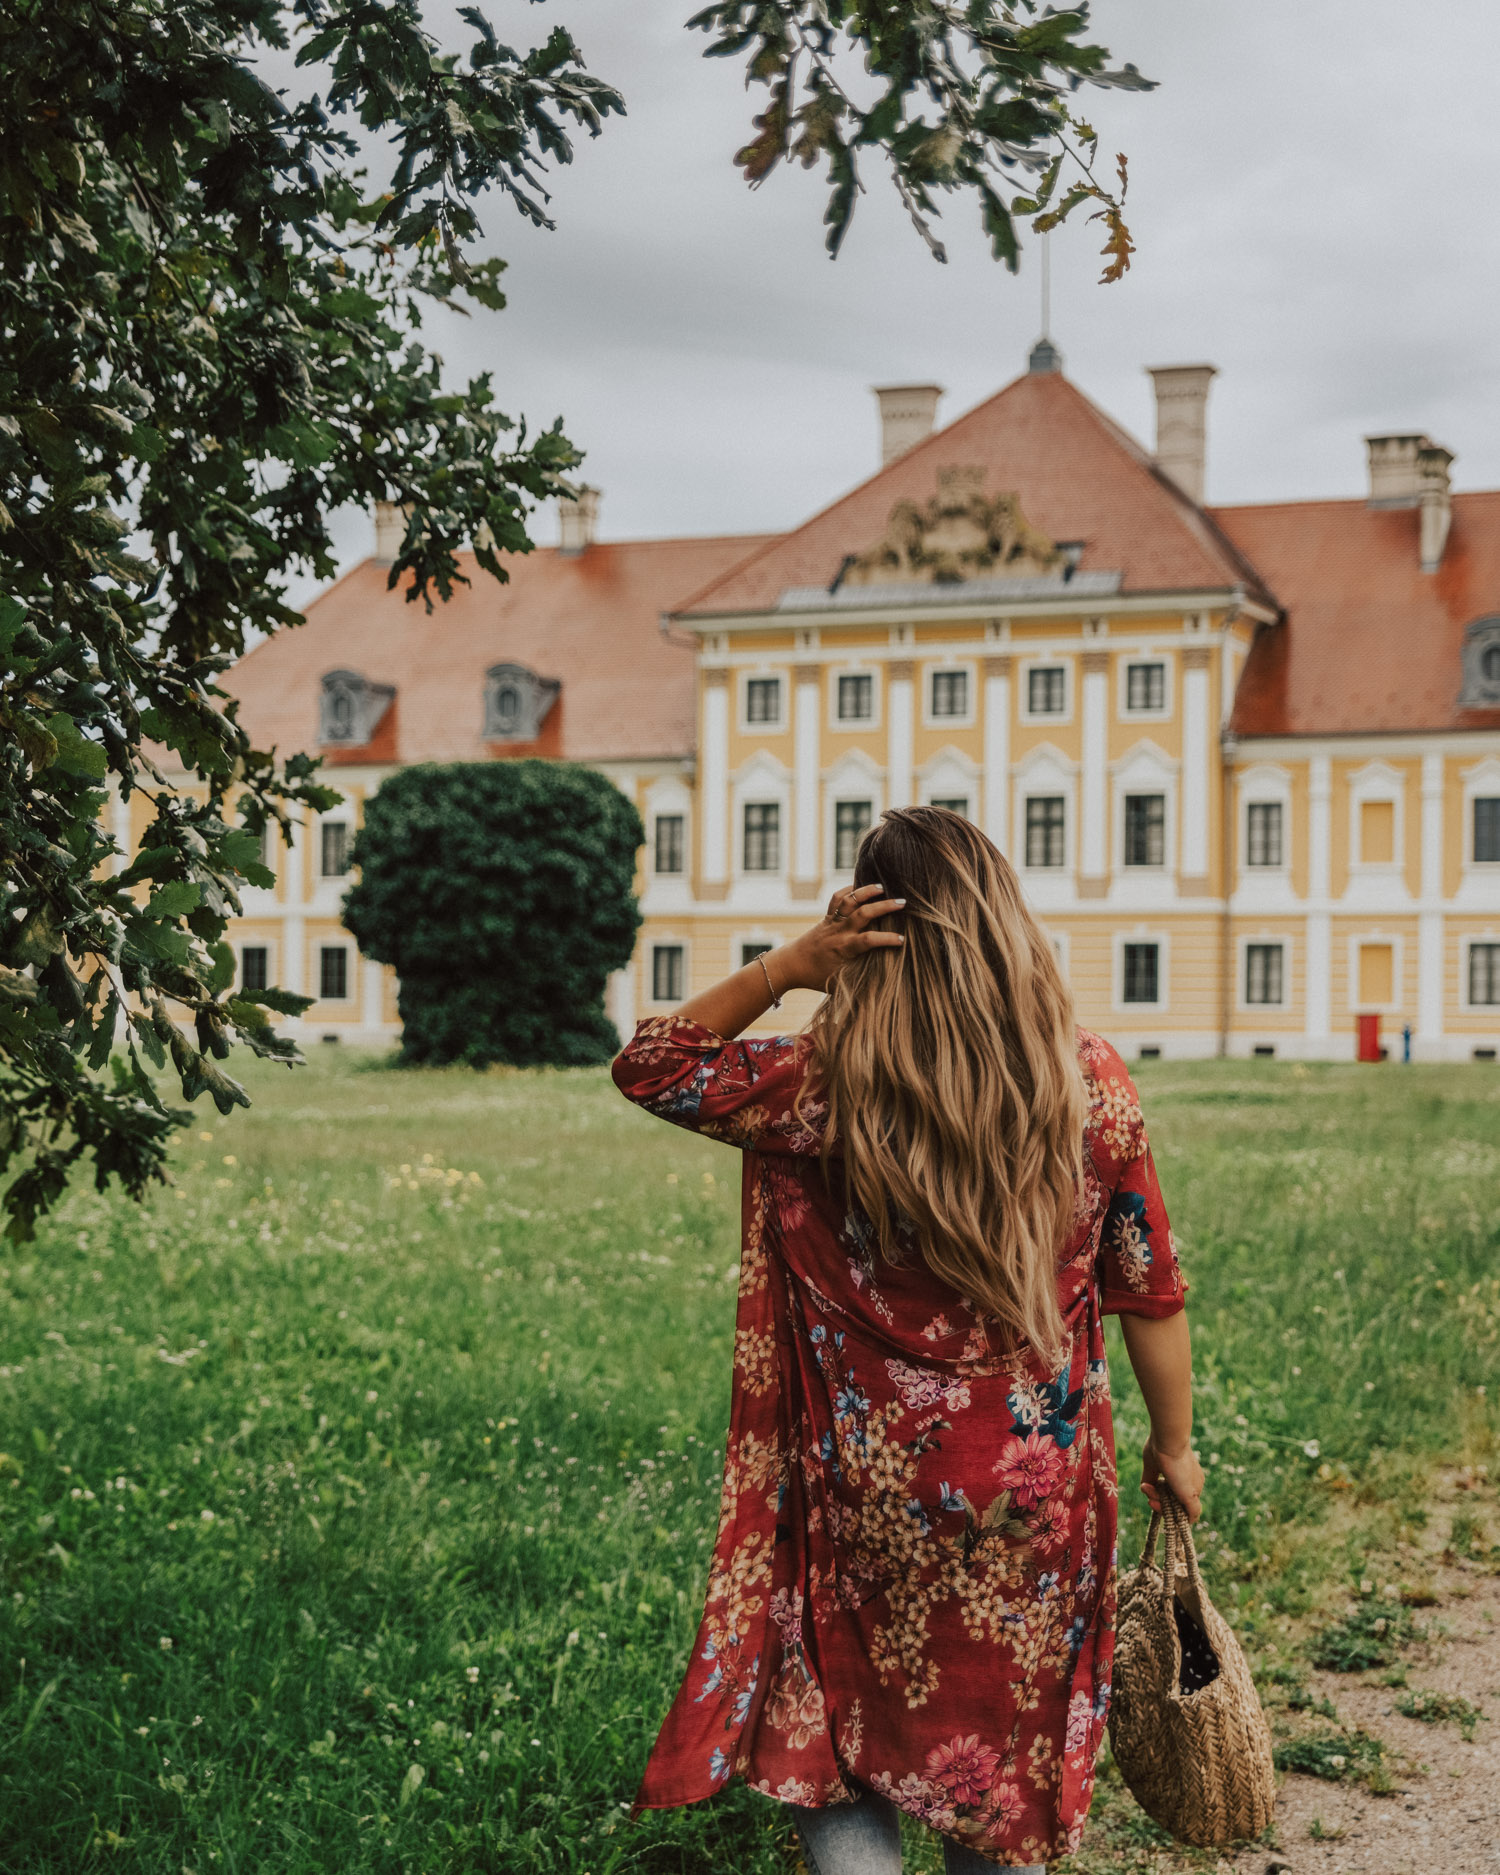 Things to Do in Slavonia | Visit Vukovar Municipal Museum